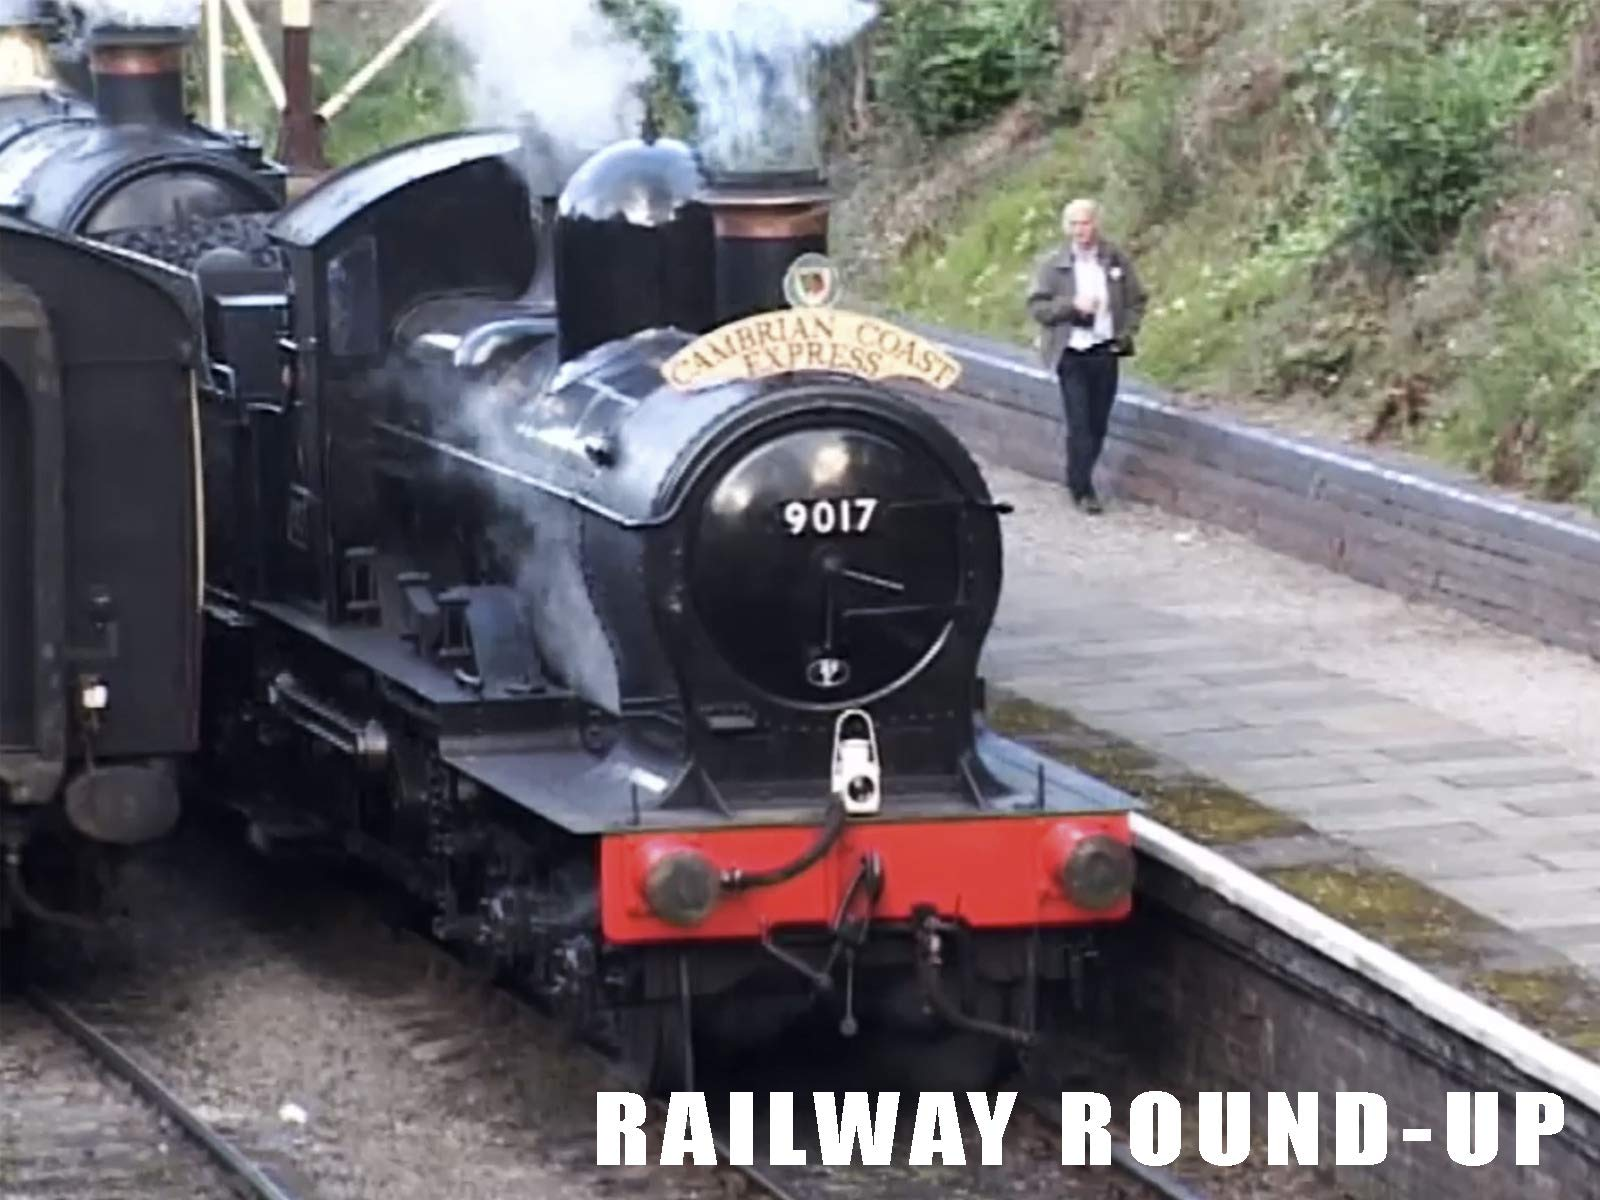 Railway Round-Up - Season 1